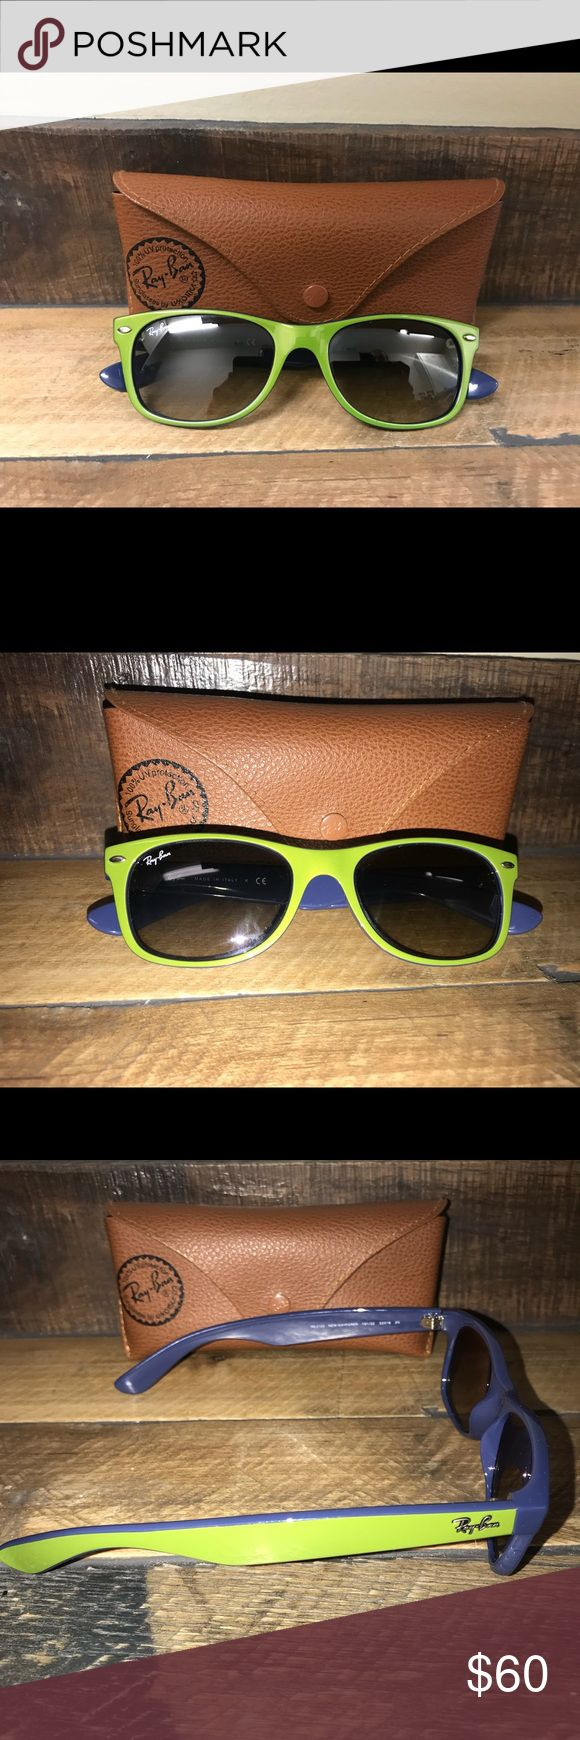 Ray Ban Wayfarer Wayfarer style Ray Bans Green outer Blue inside  Excellent condition  Comes with original leather ray ban case Ray-Ban Accessories Glasses